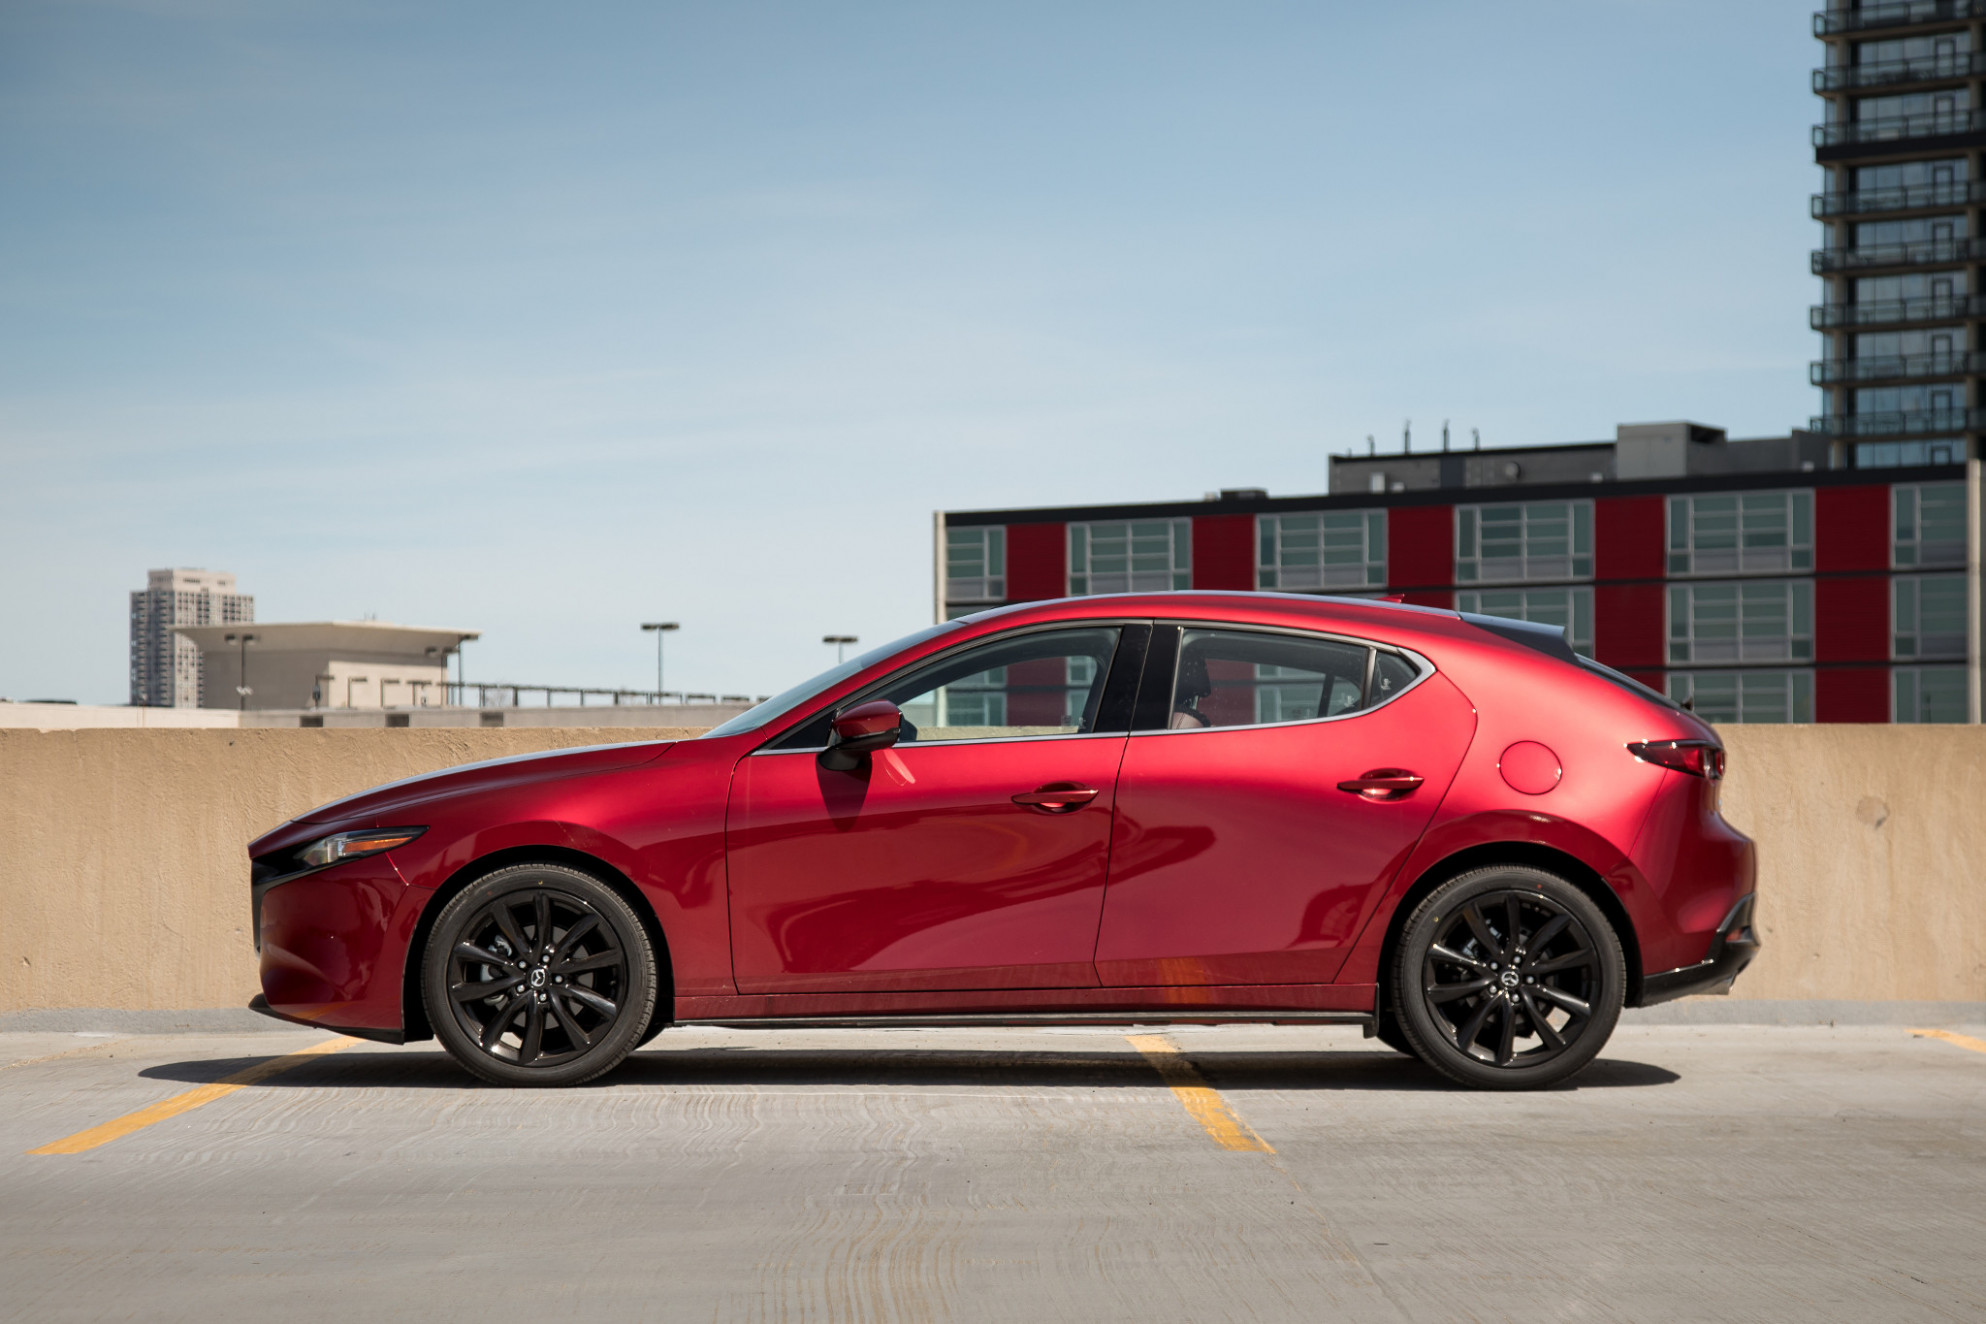 Mazda8: Which Should You Buy, 8 or 8? | News | Cars.com